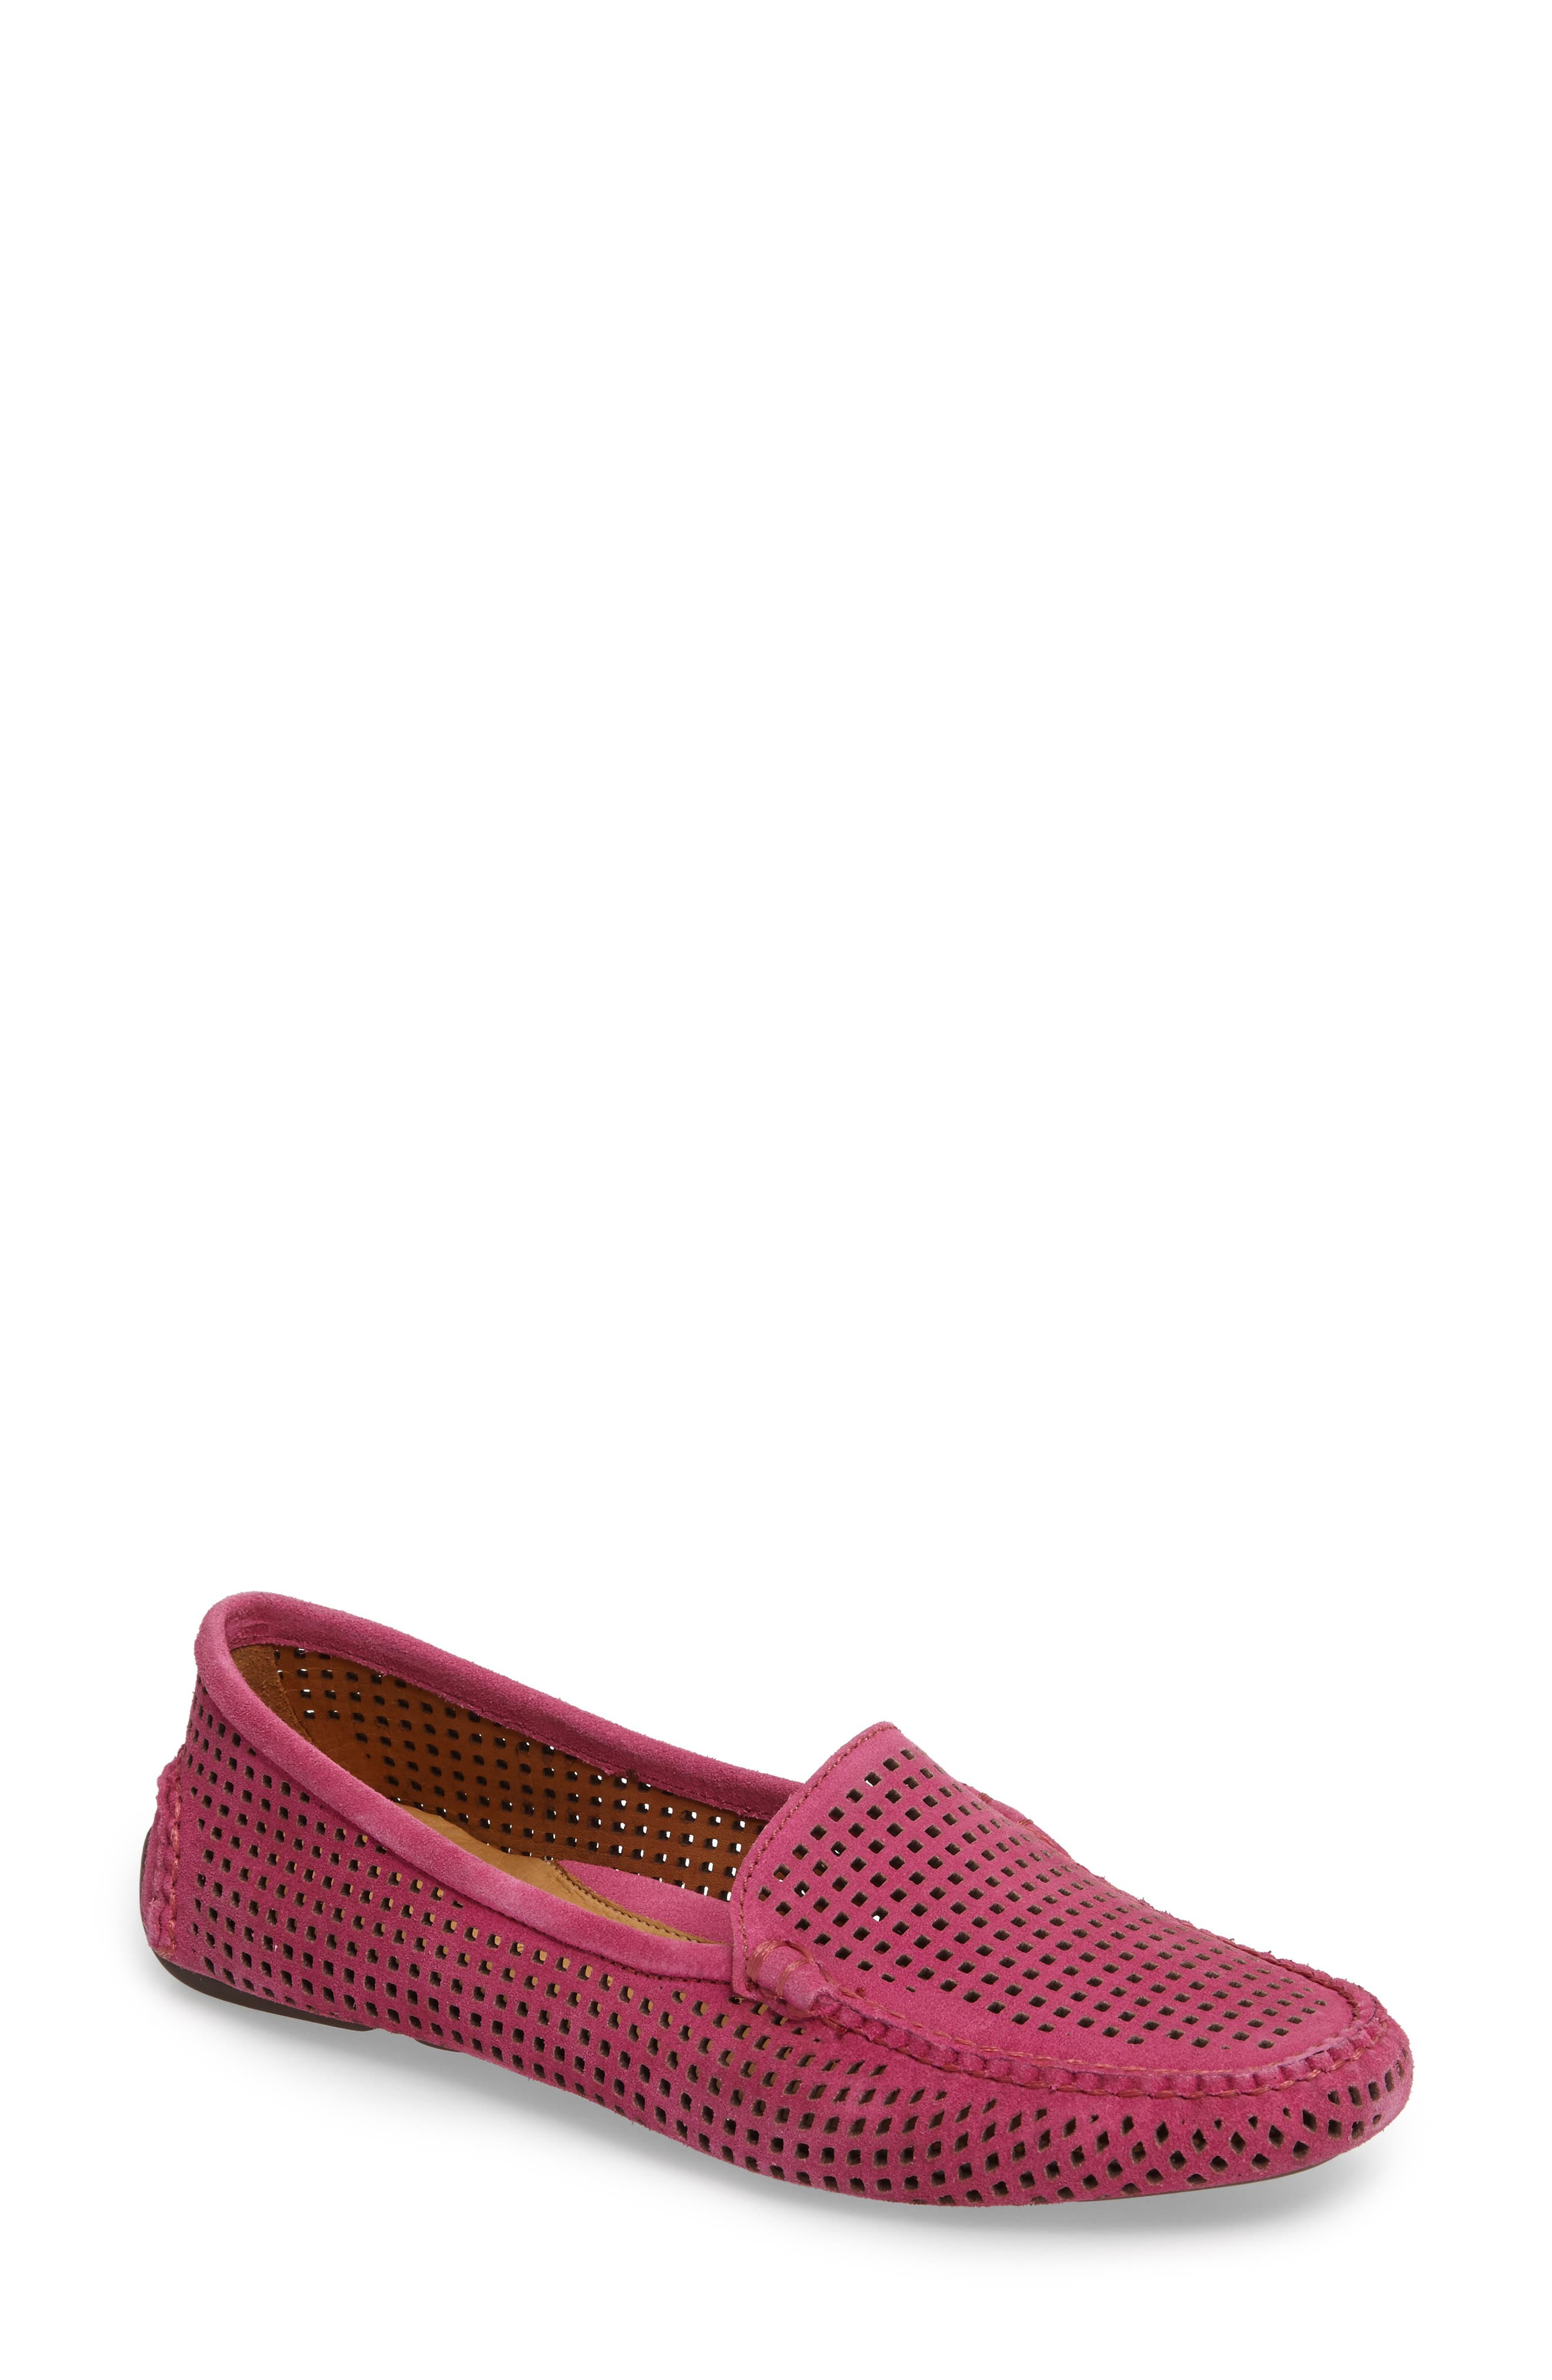 'Barrie' Flat,                             Main thumbnail 1, color,                             Hot Pink Suede